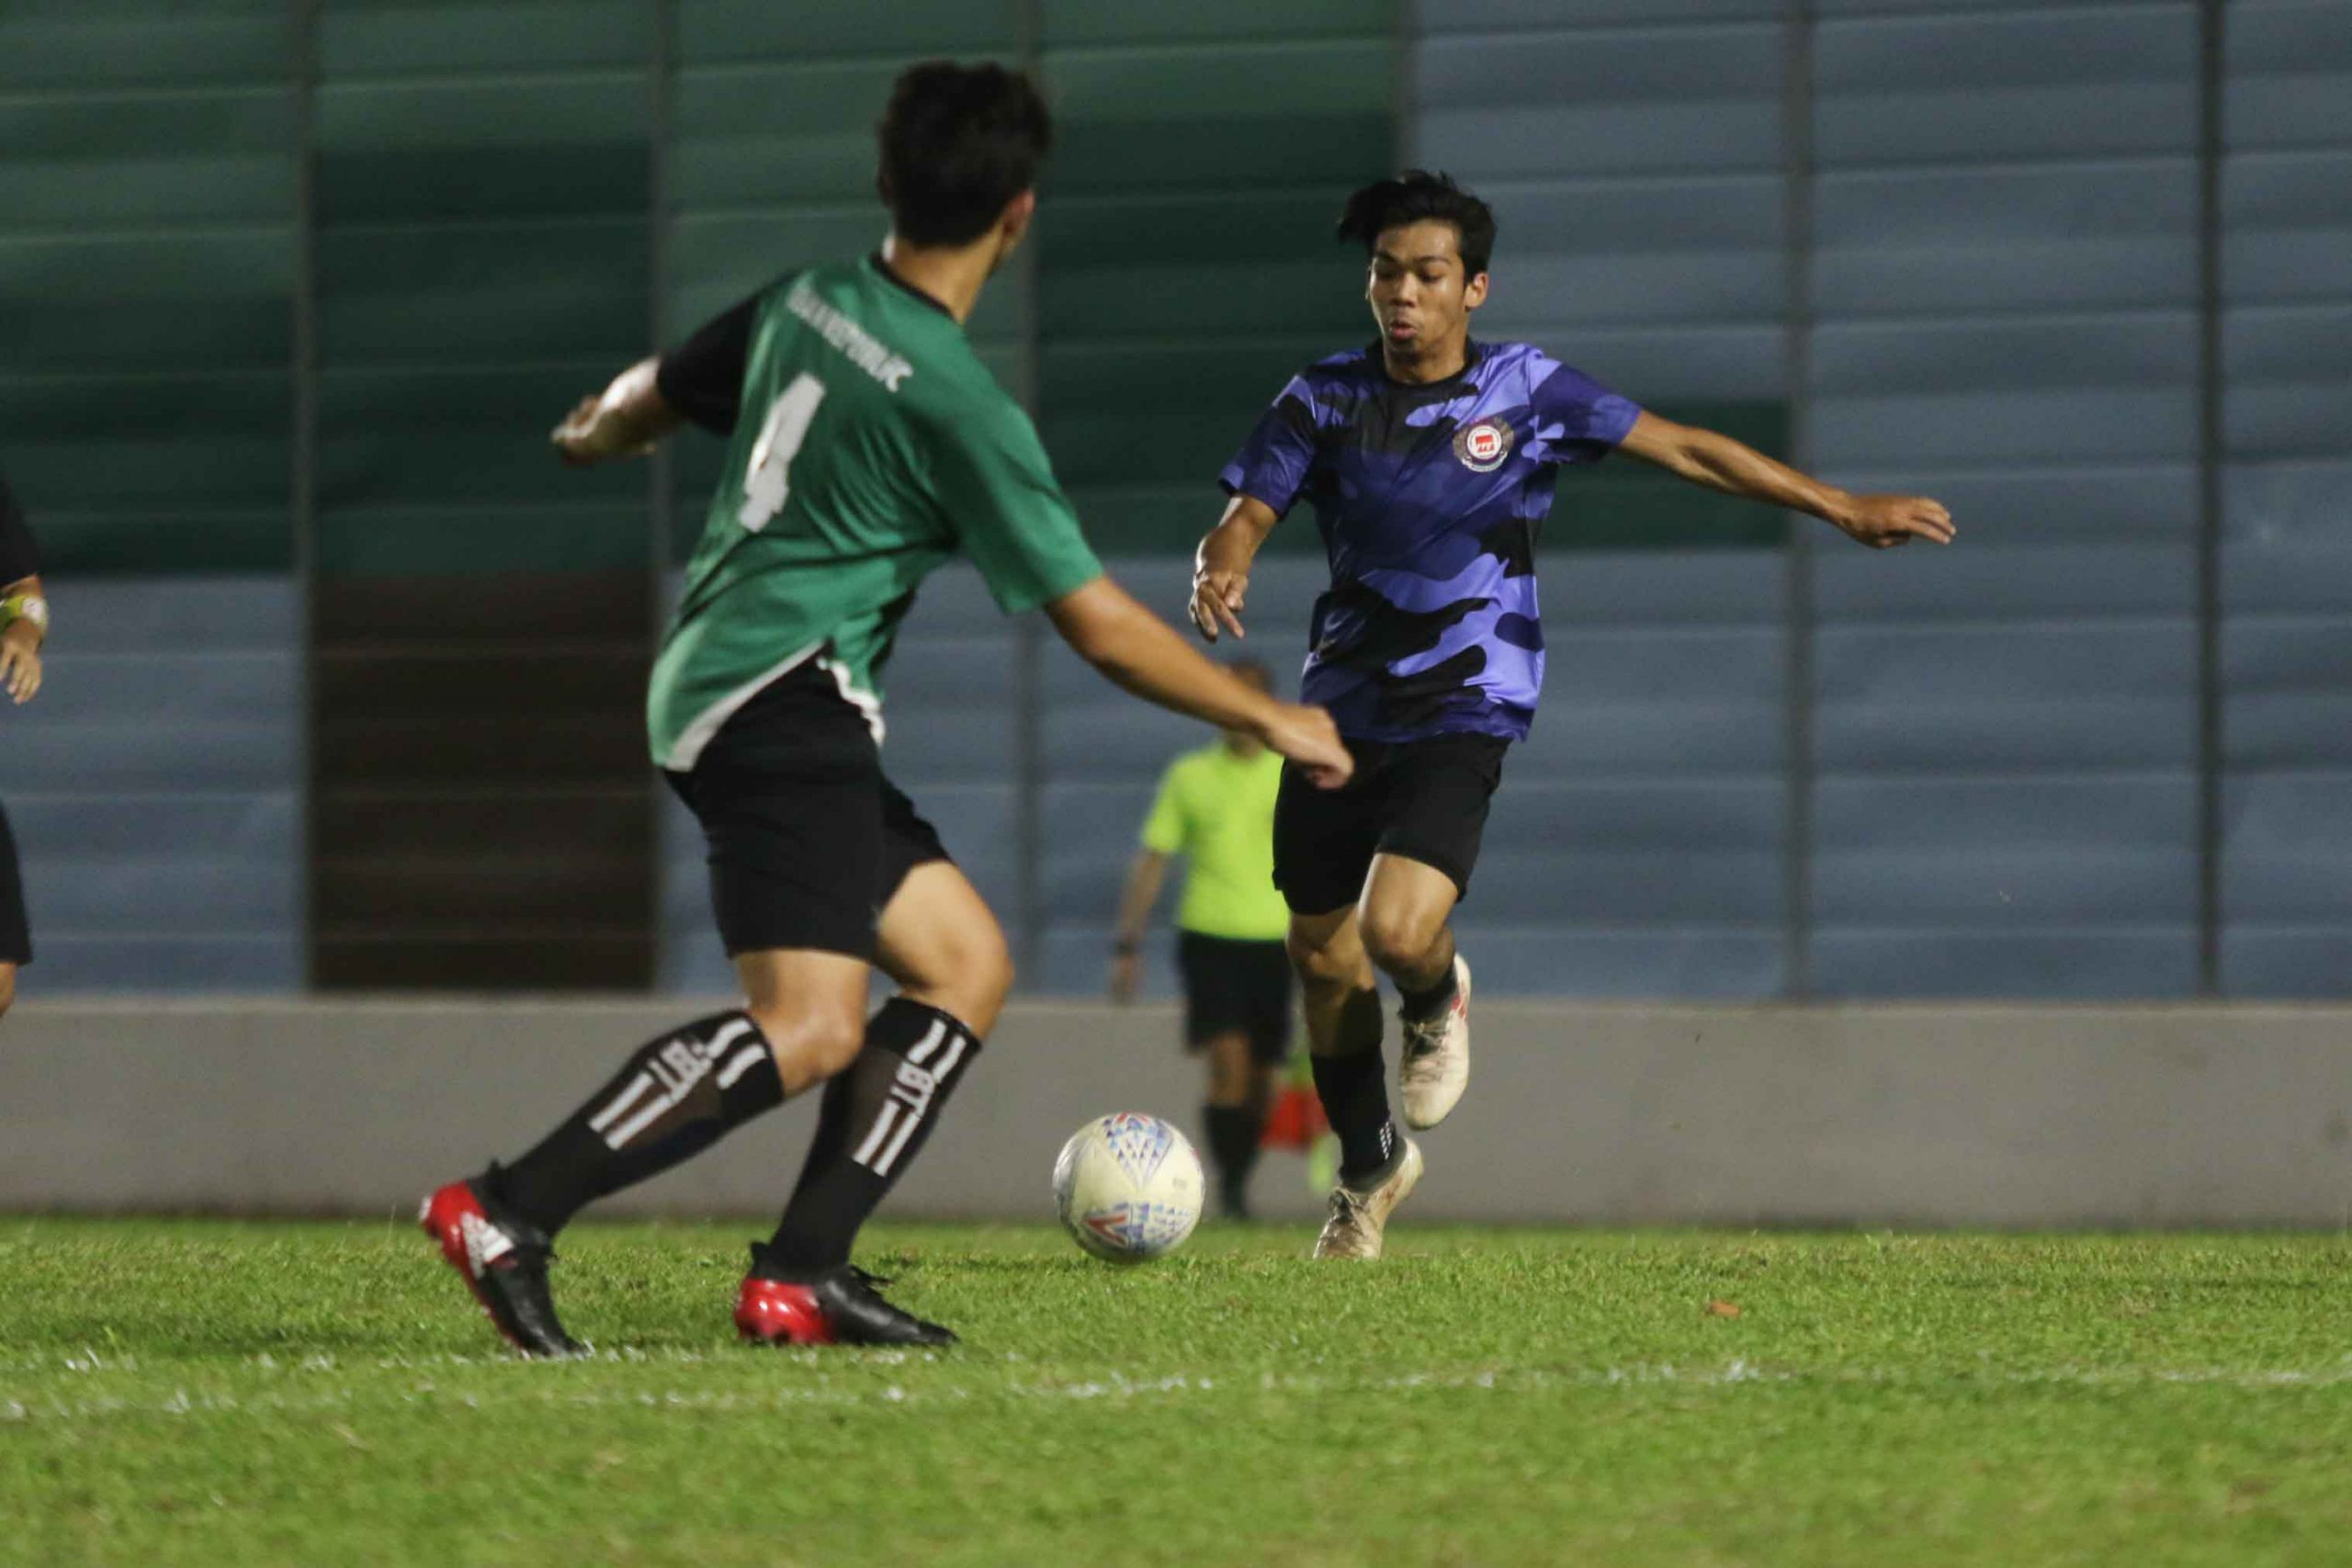 Khairul Hairie (ITE #8) lining himself up for a shot at goal. (Photo 4 © Clara Lau/Red Sports)